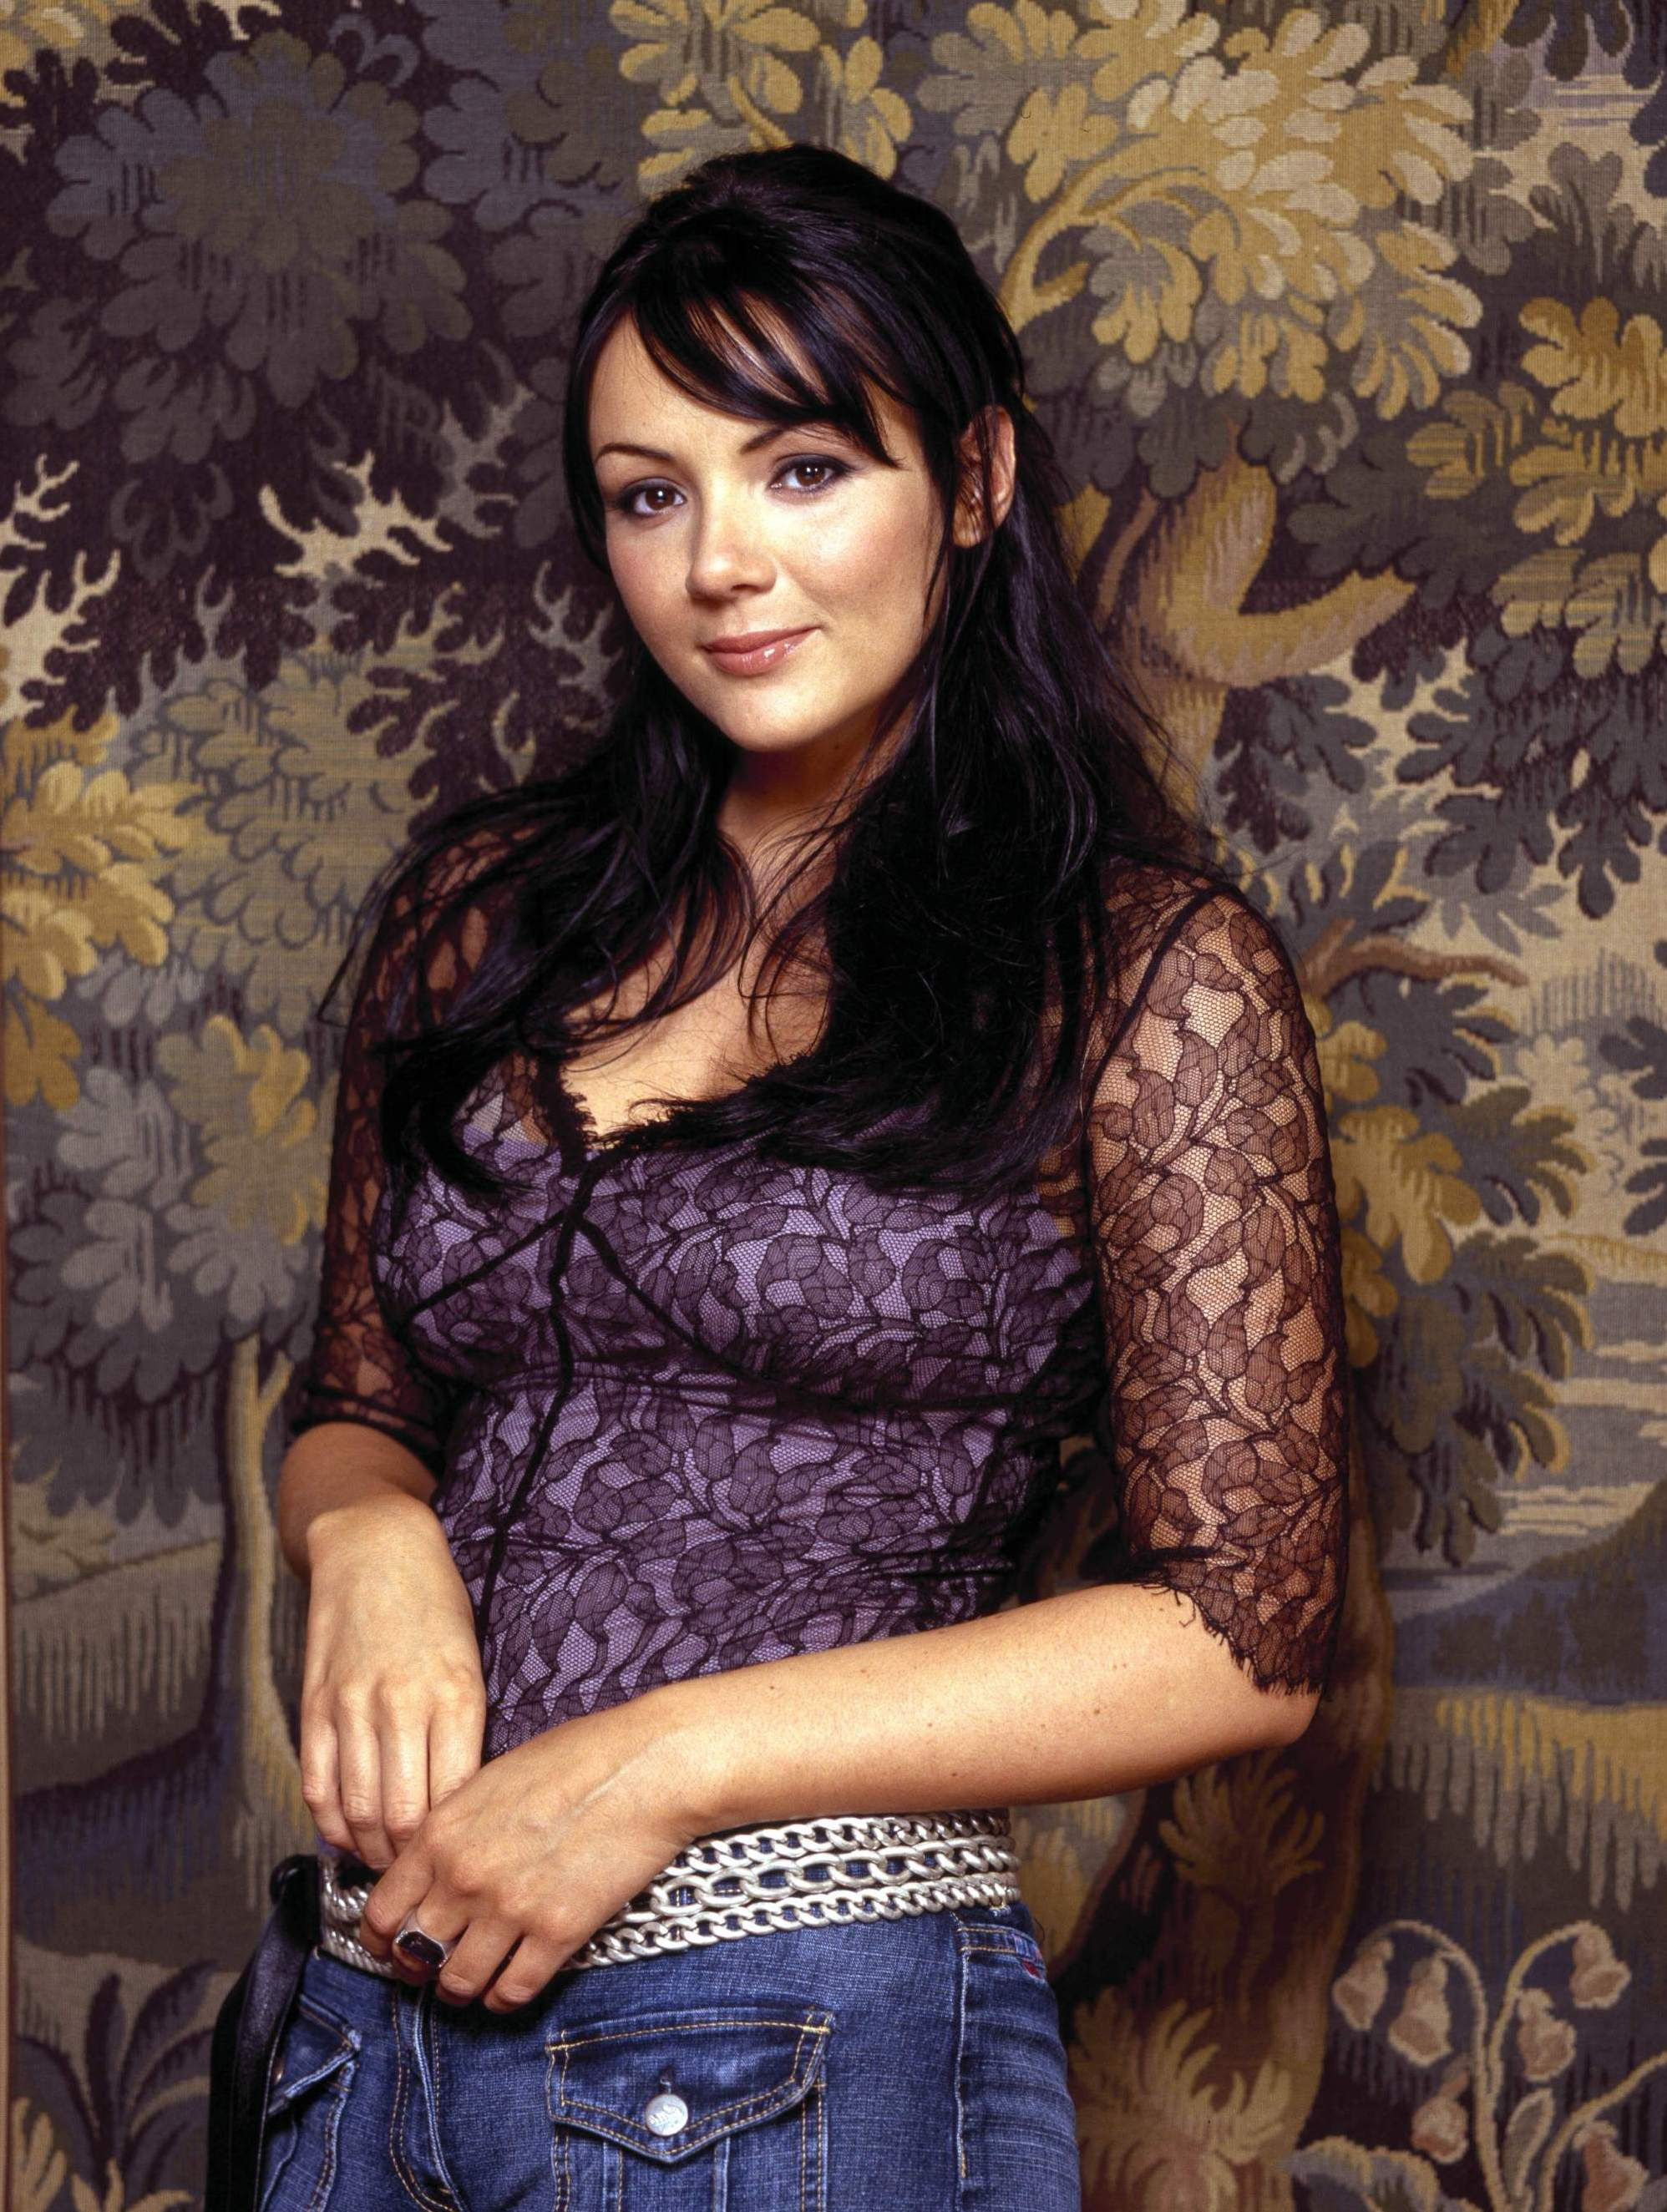 Martine McCutcheon (born 1976) Martine McCutcheon (born 1976) new picture